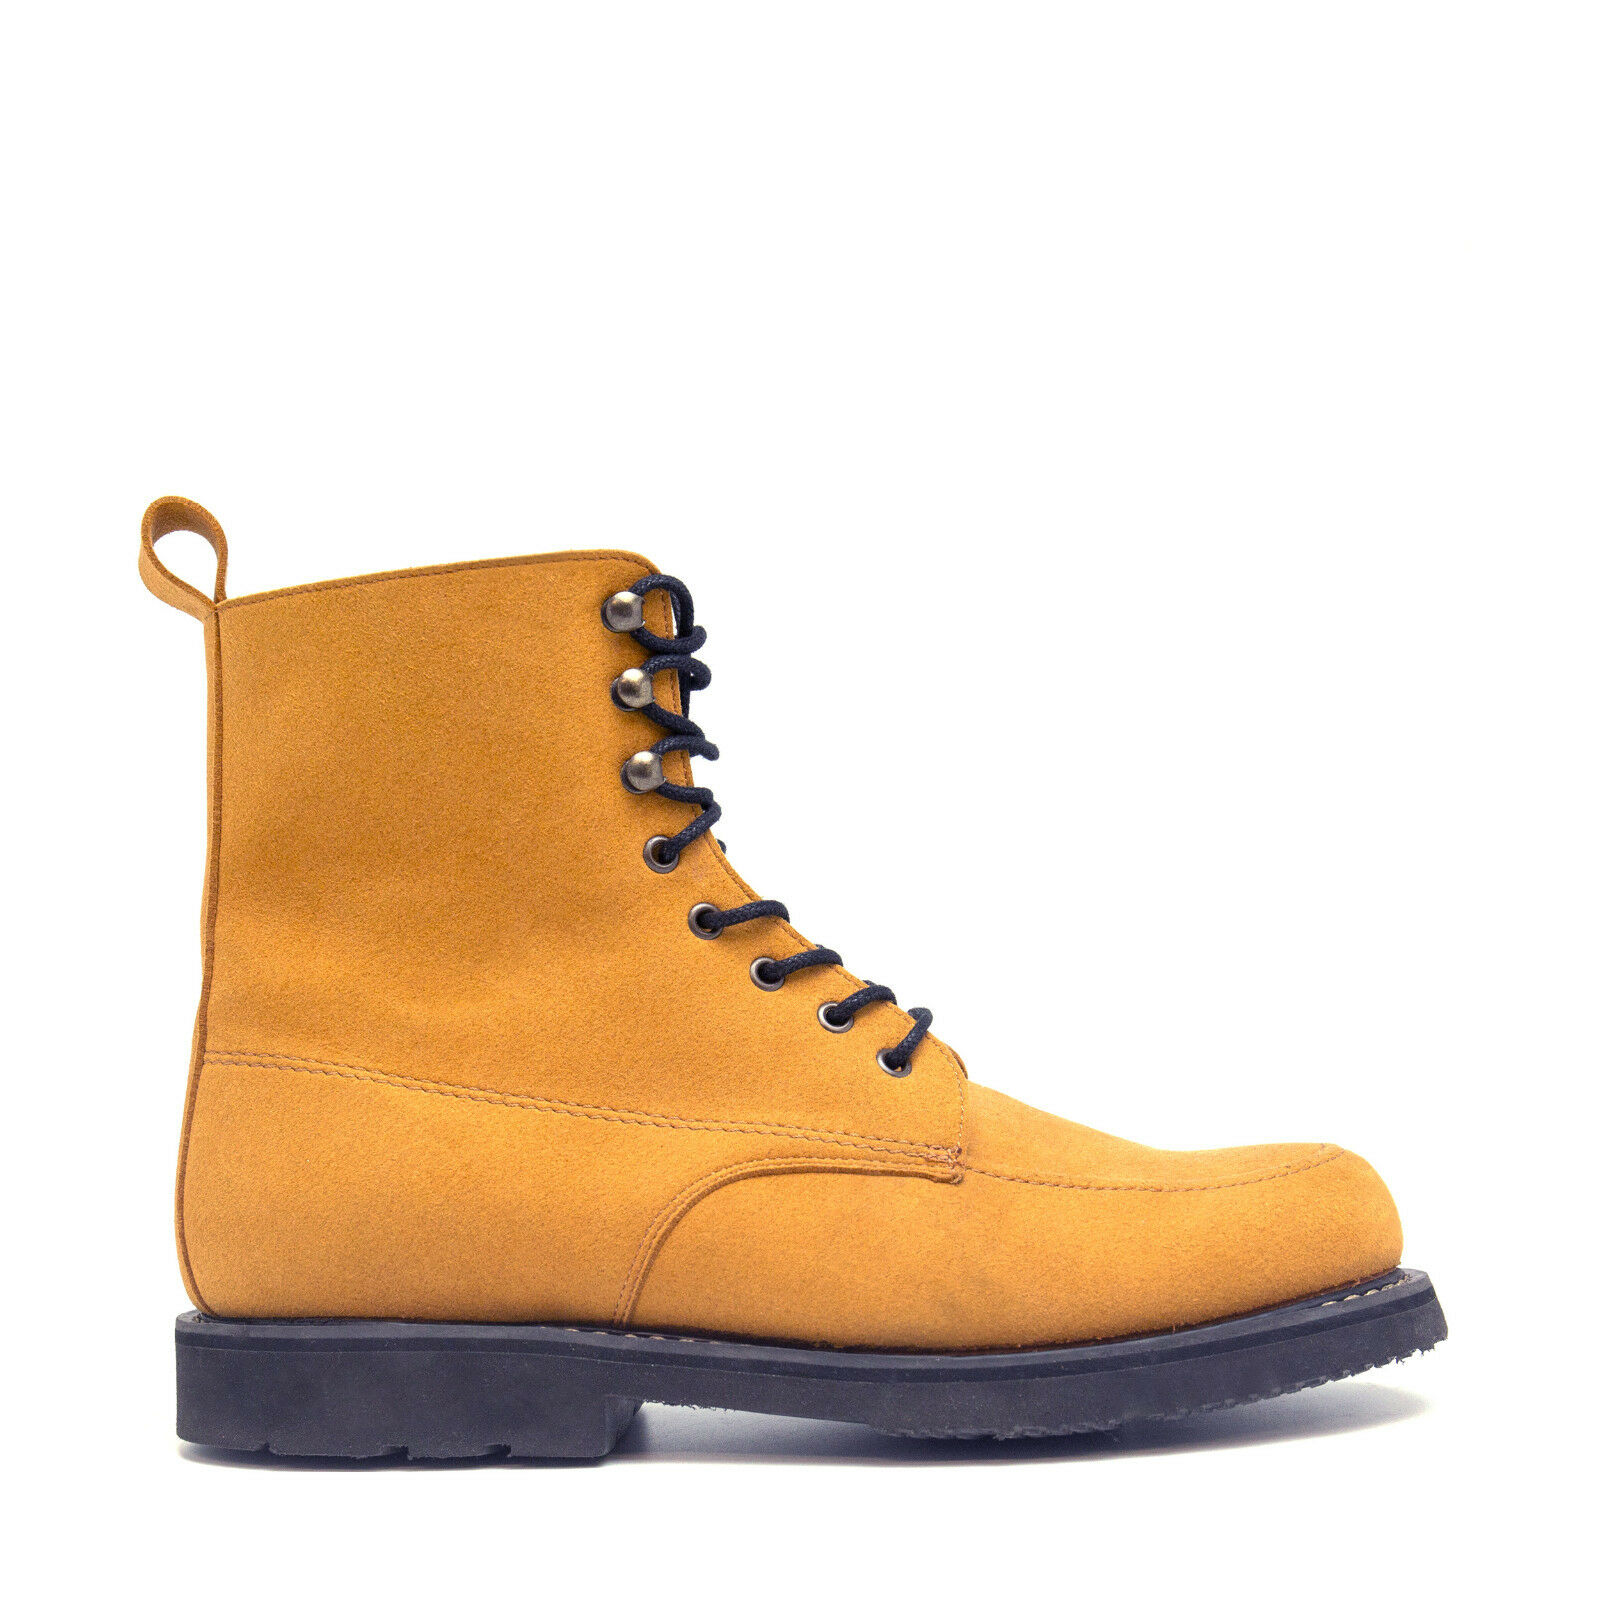 Man Vegan bota Round Toe Ecological Micro-Suede Goodyear System Water Resistant